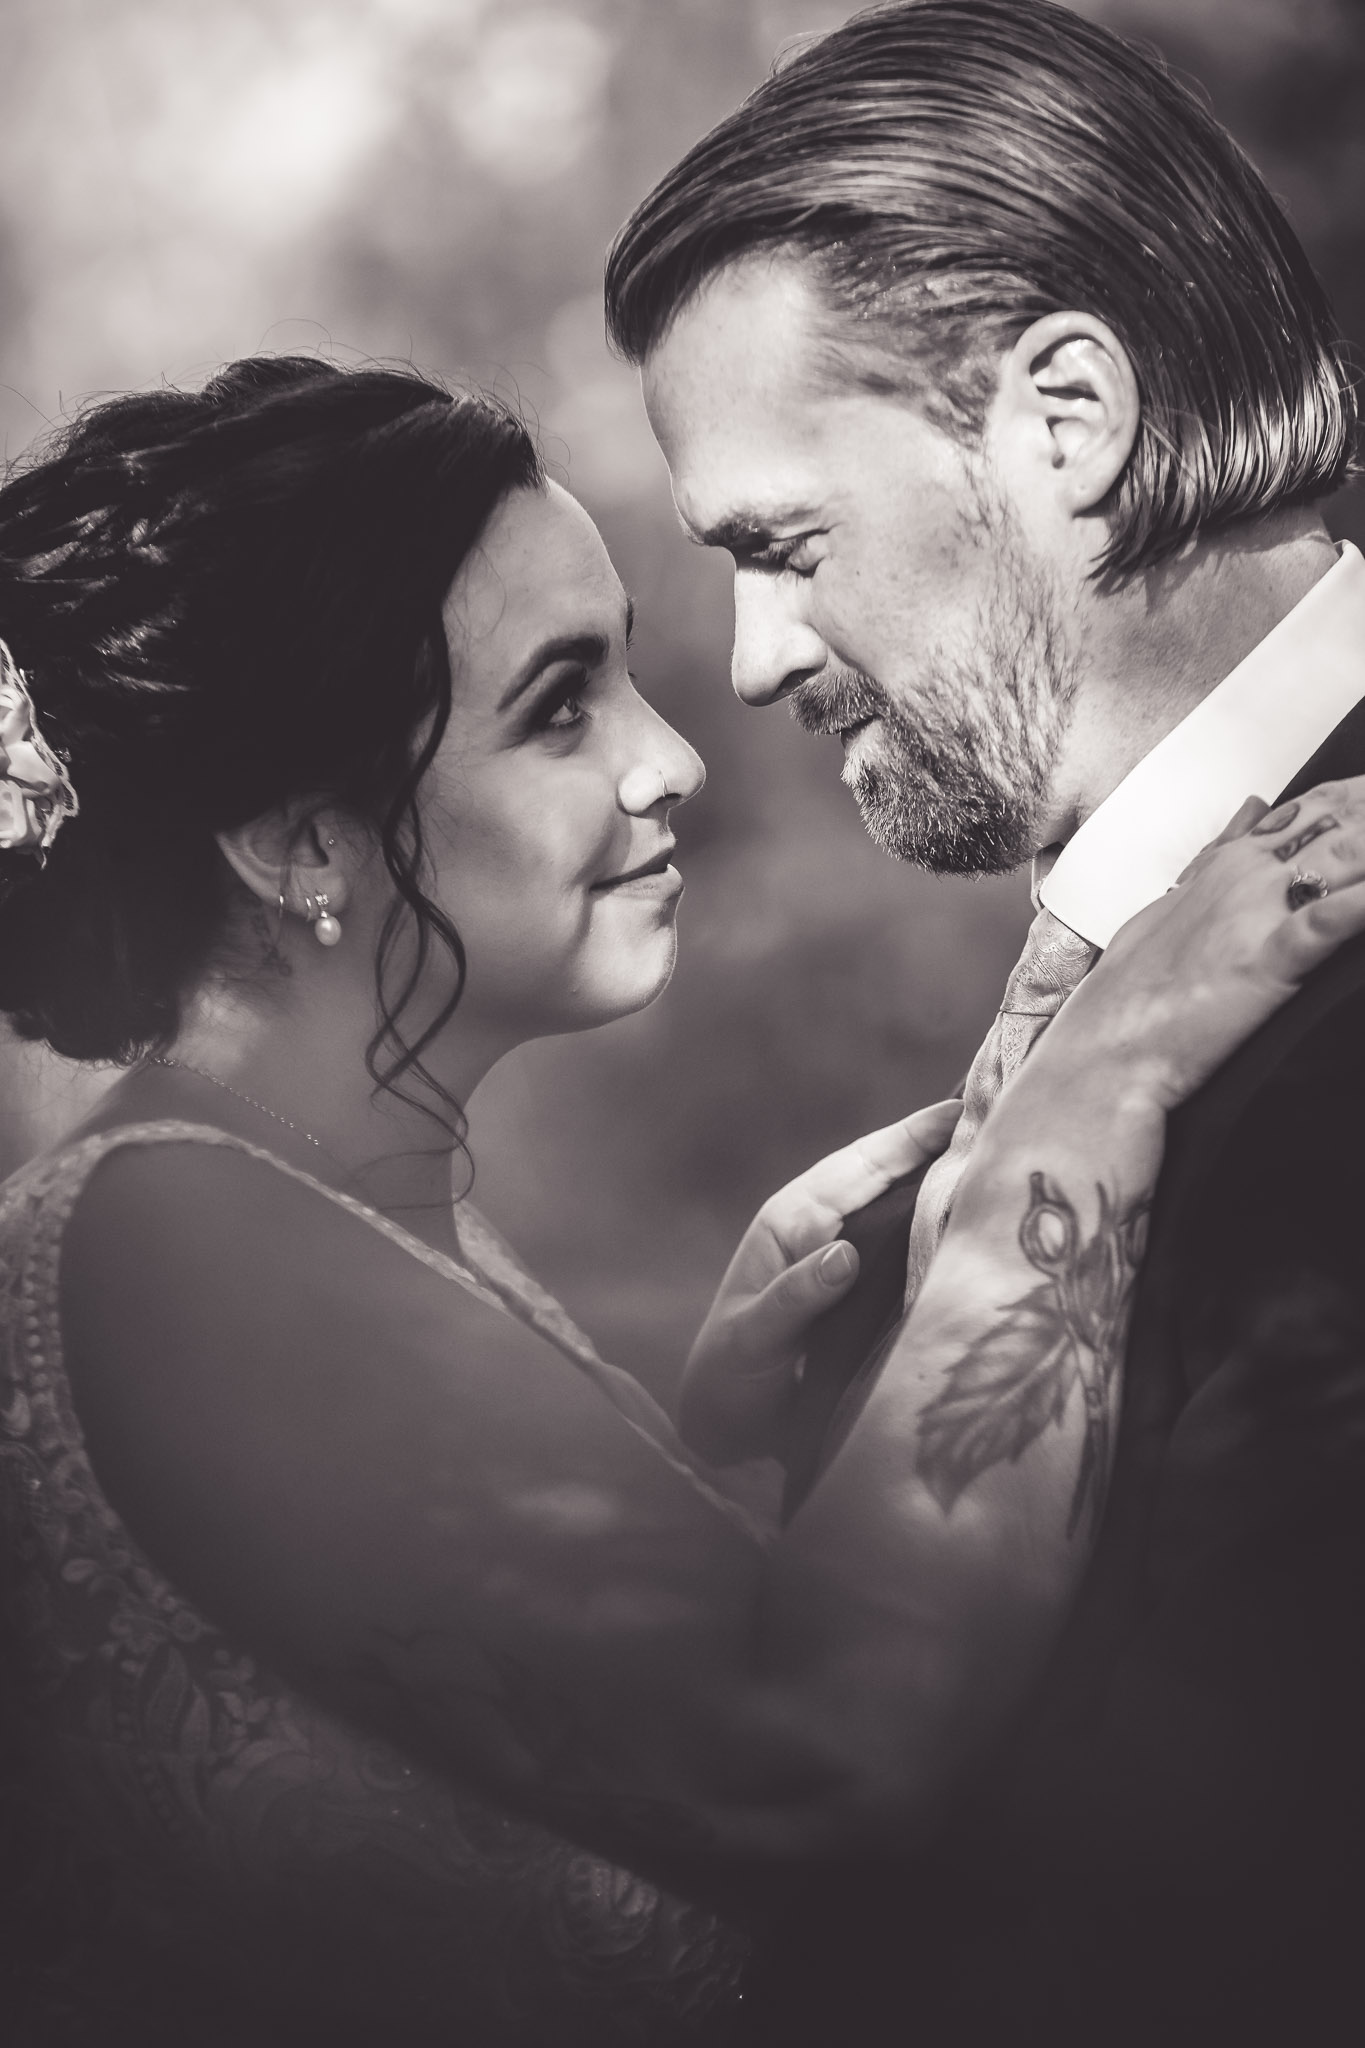 Amy D Photography- Bride and Groom-Barrie Wedding Photography Muskoka Wedding Photography Bride and Groom Poses Bride and Groom Train Tracks Snow Valley Wedding-121.jpg